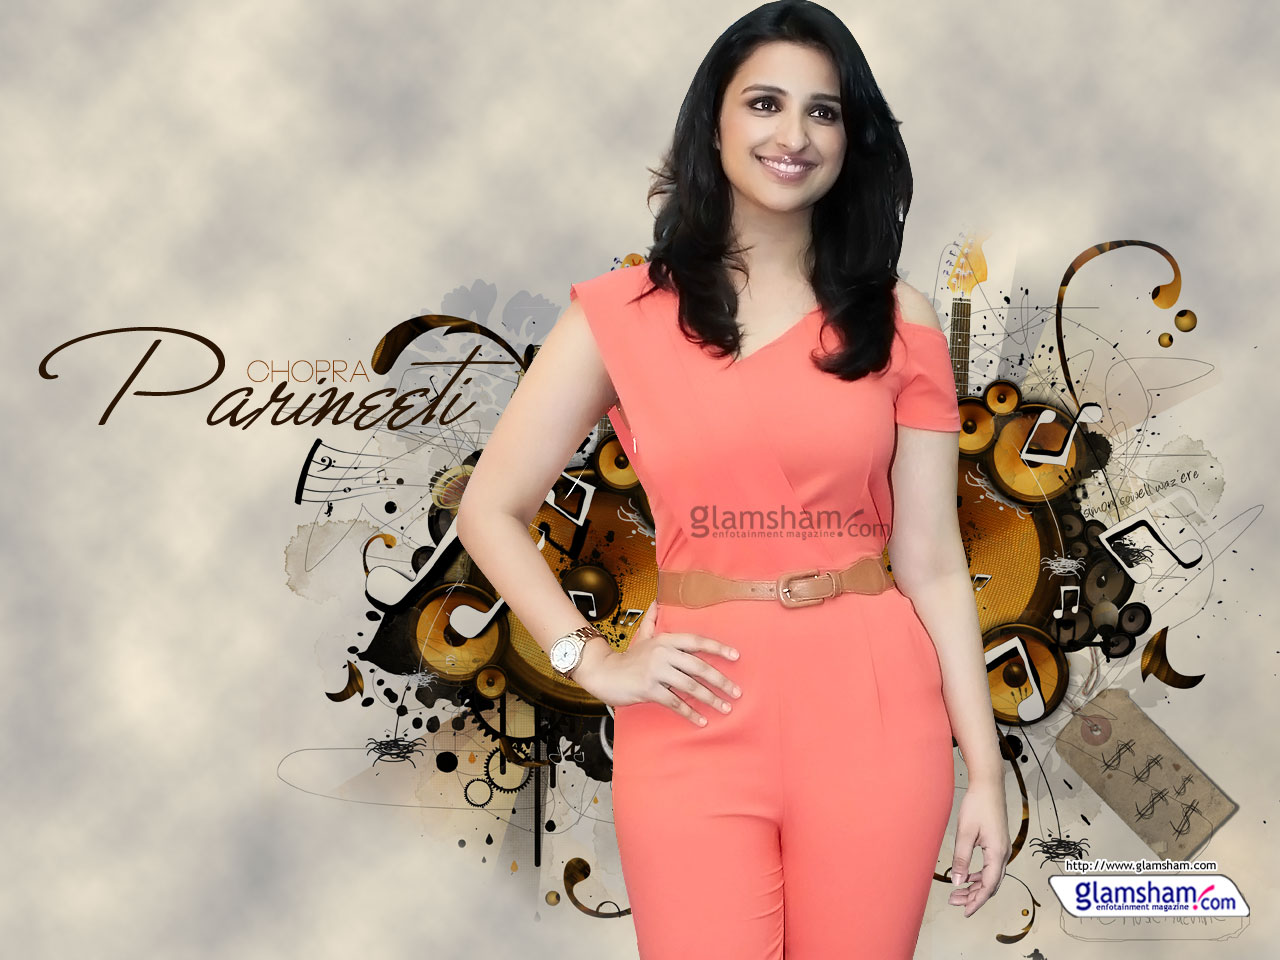 Parineeti Chopra Hd Wallpapers 1280x960